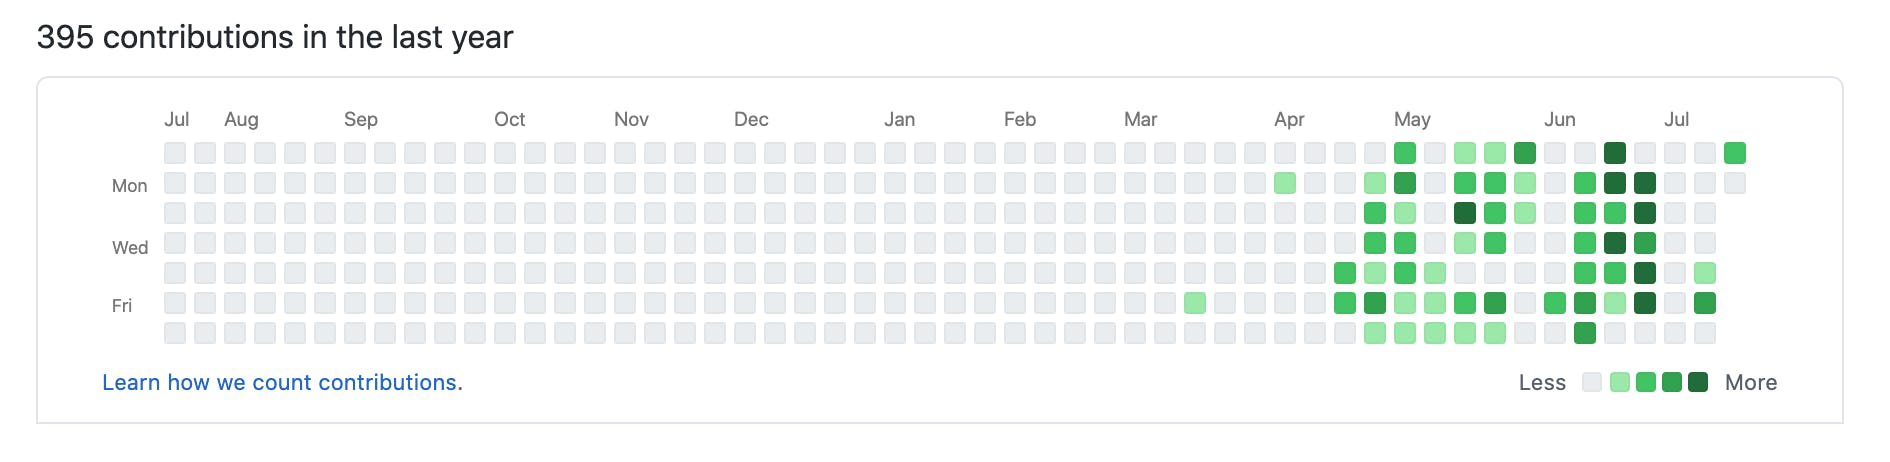 overview of GitHub contributions over a year period